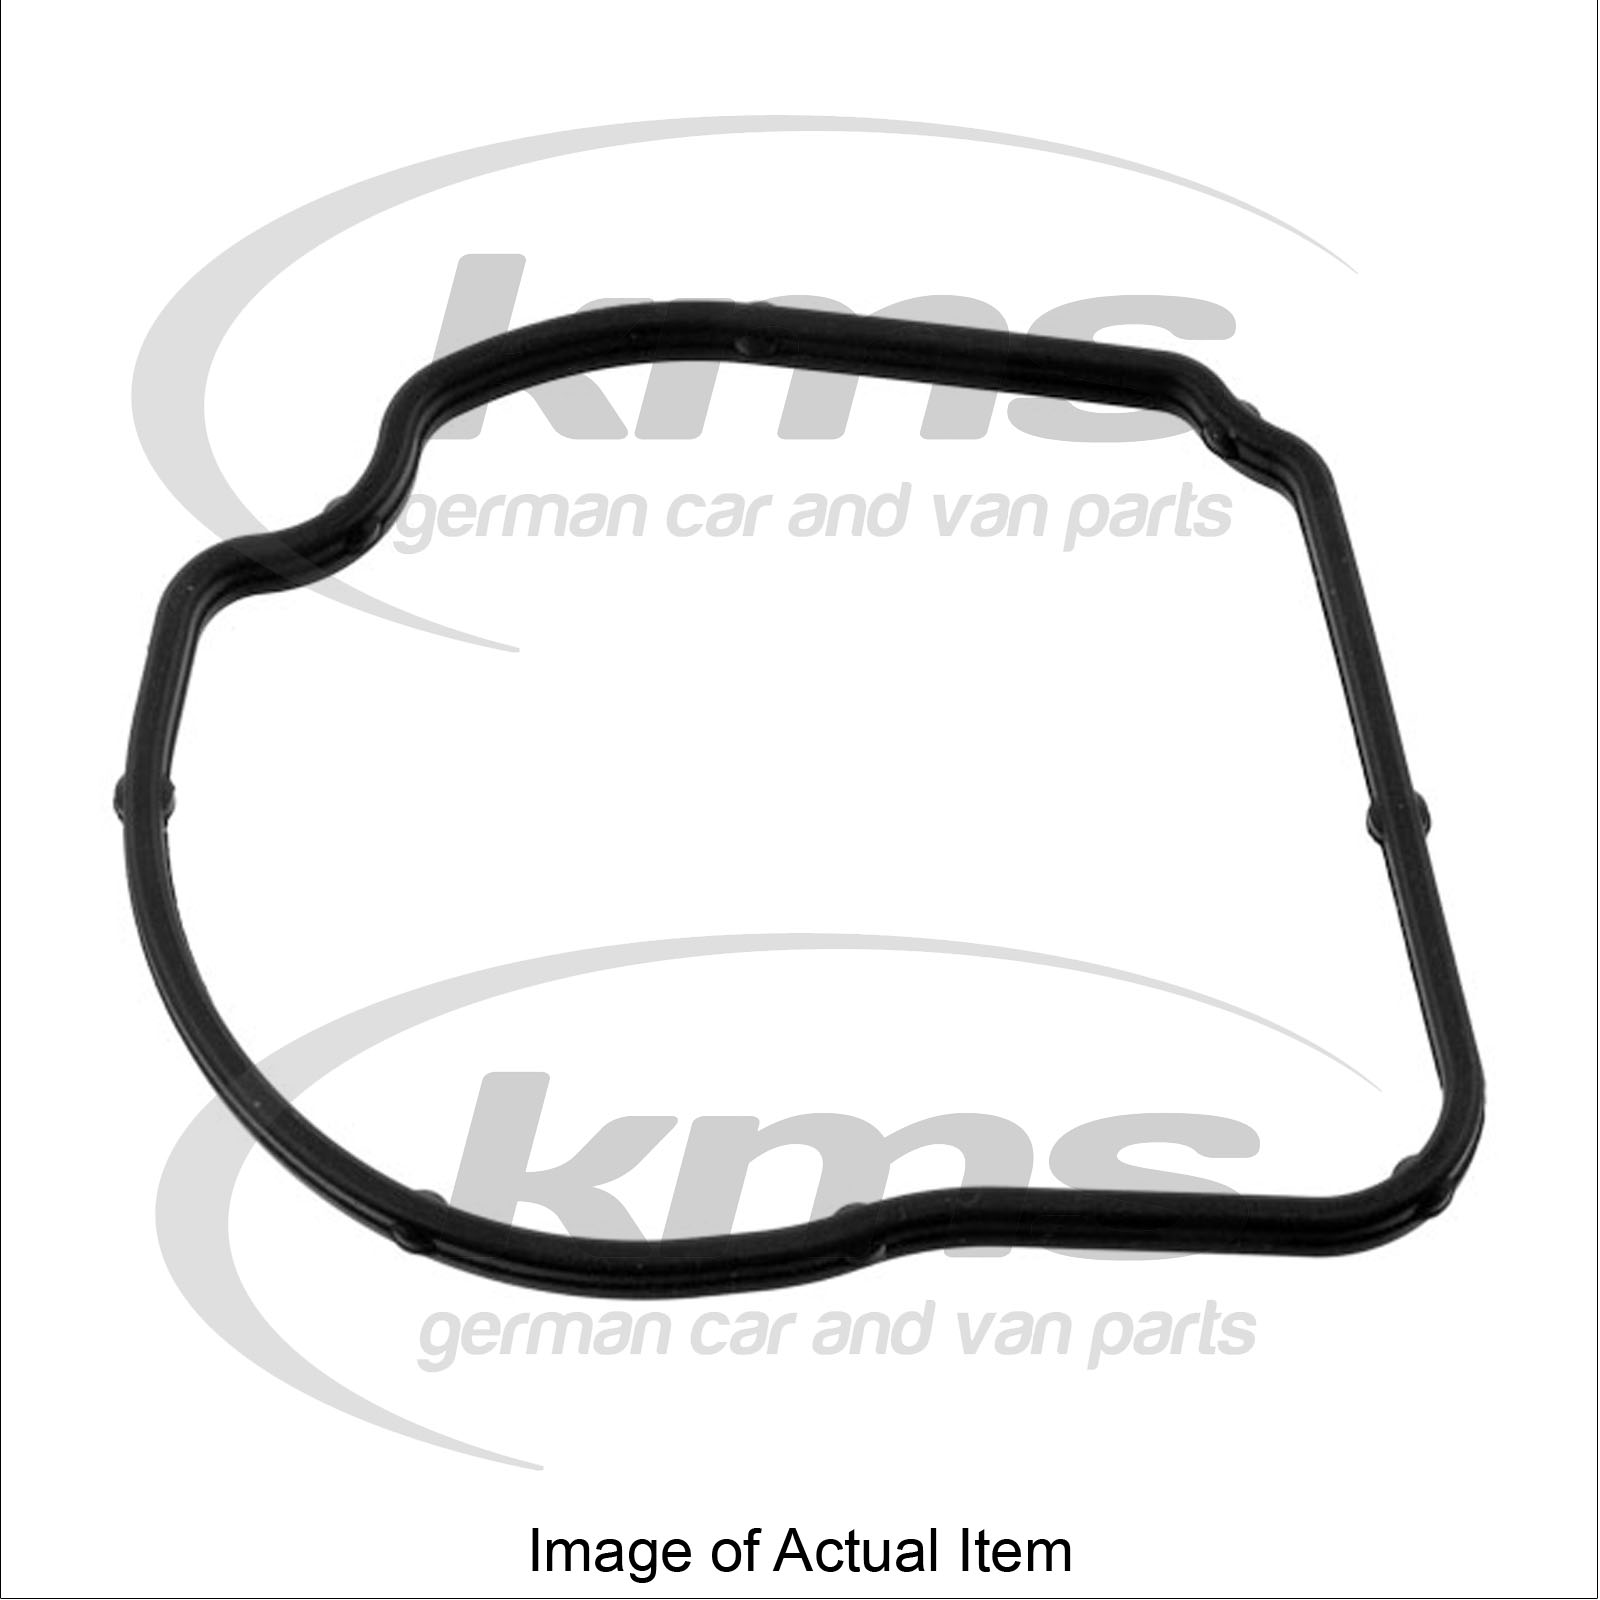 THERMOSTAT GASKET Mercedes Benz C Class Estate C220CDi